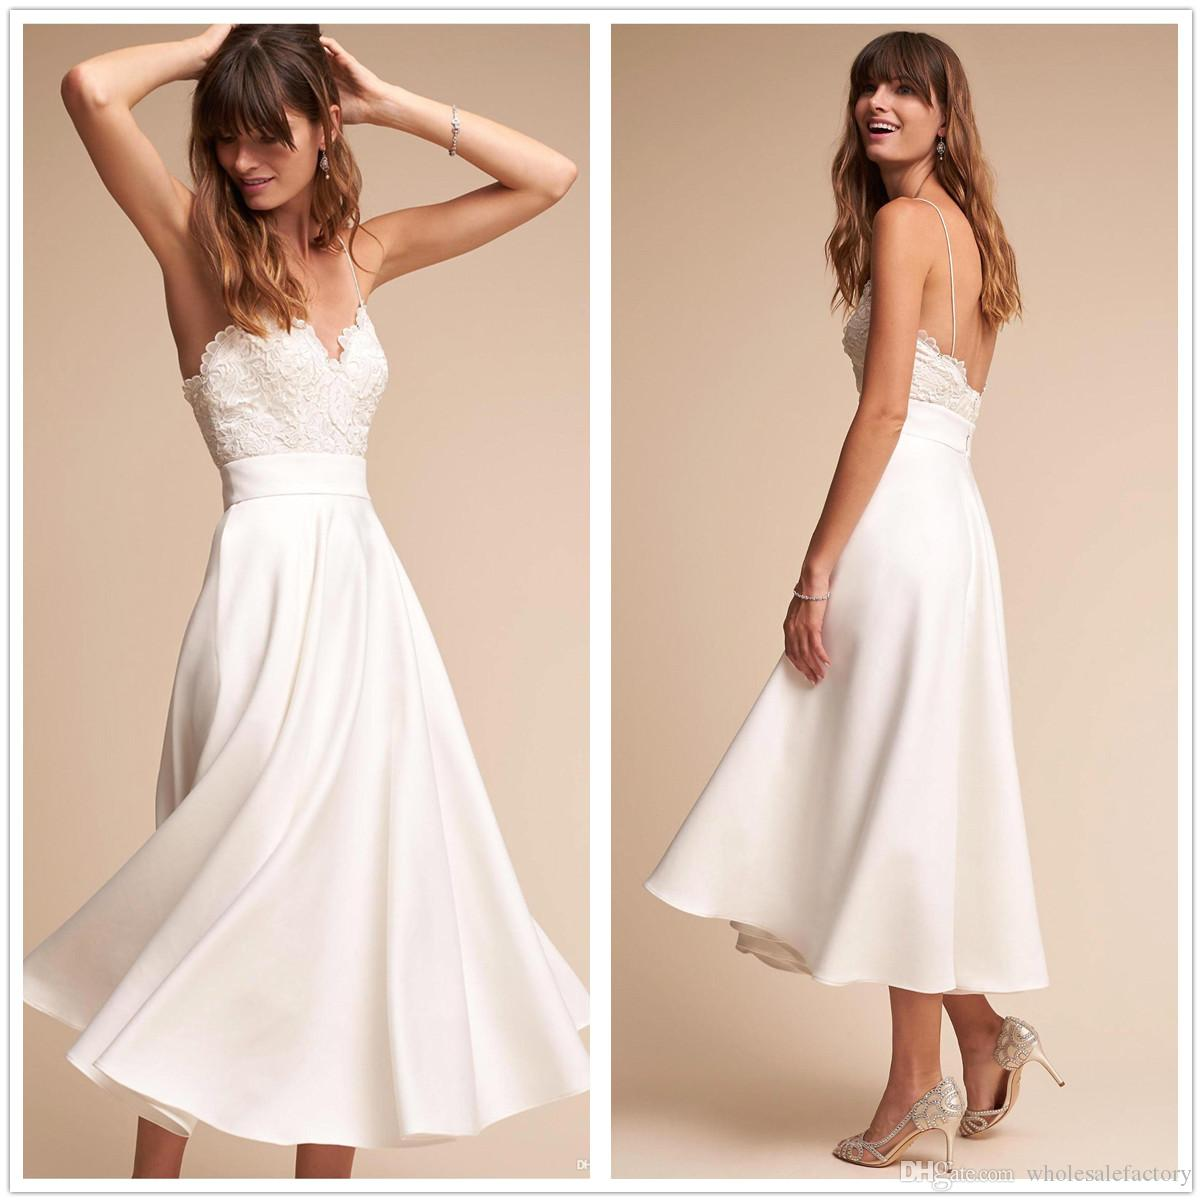 Discount 2018 New Spaghetti Straps Lace Short Wedding Dresses Satin A Line Tea Length Backless Summer Beach Bridal Gowns With Buttons: Ed T Length Wedding Dresses At Reisefeber.org